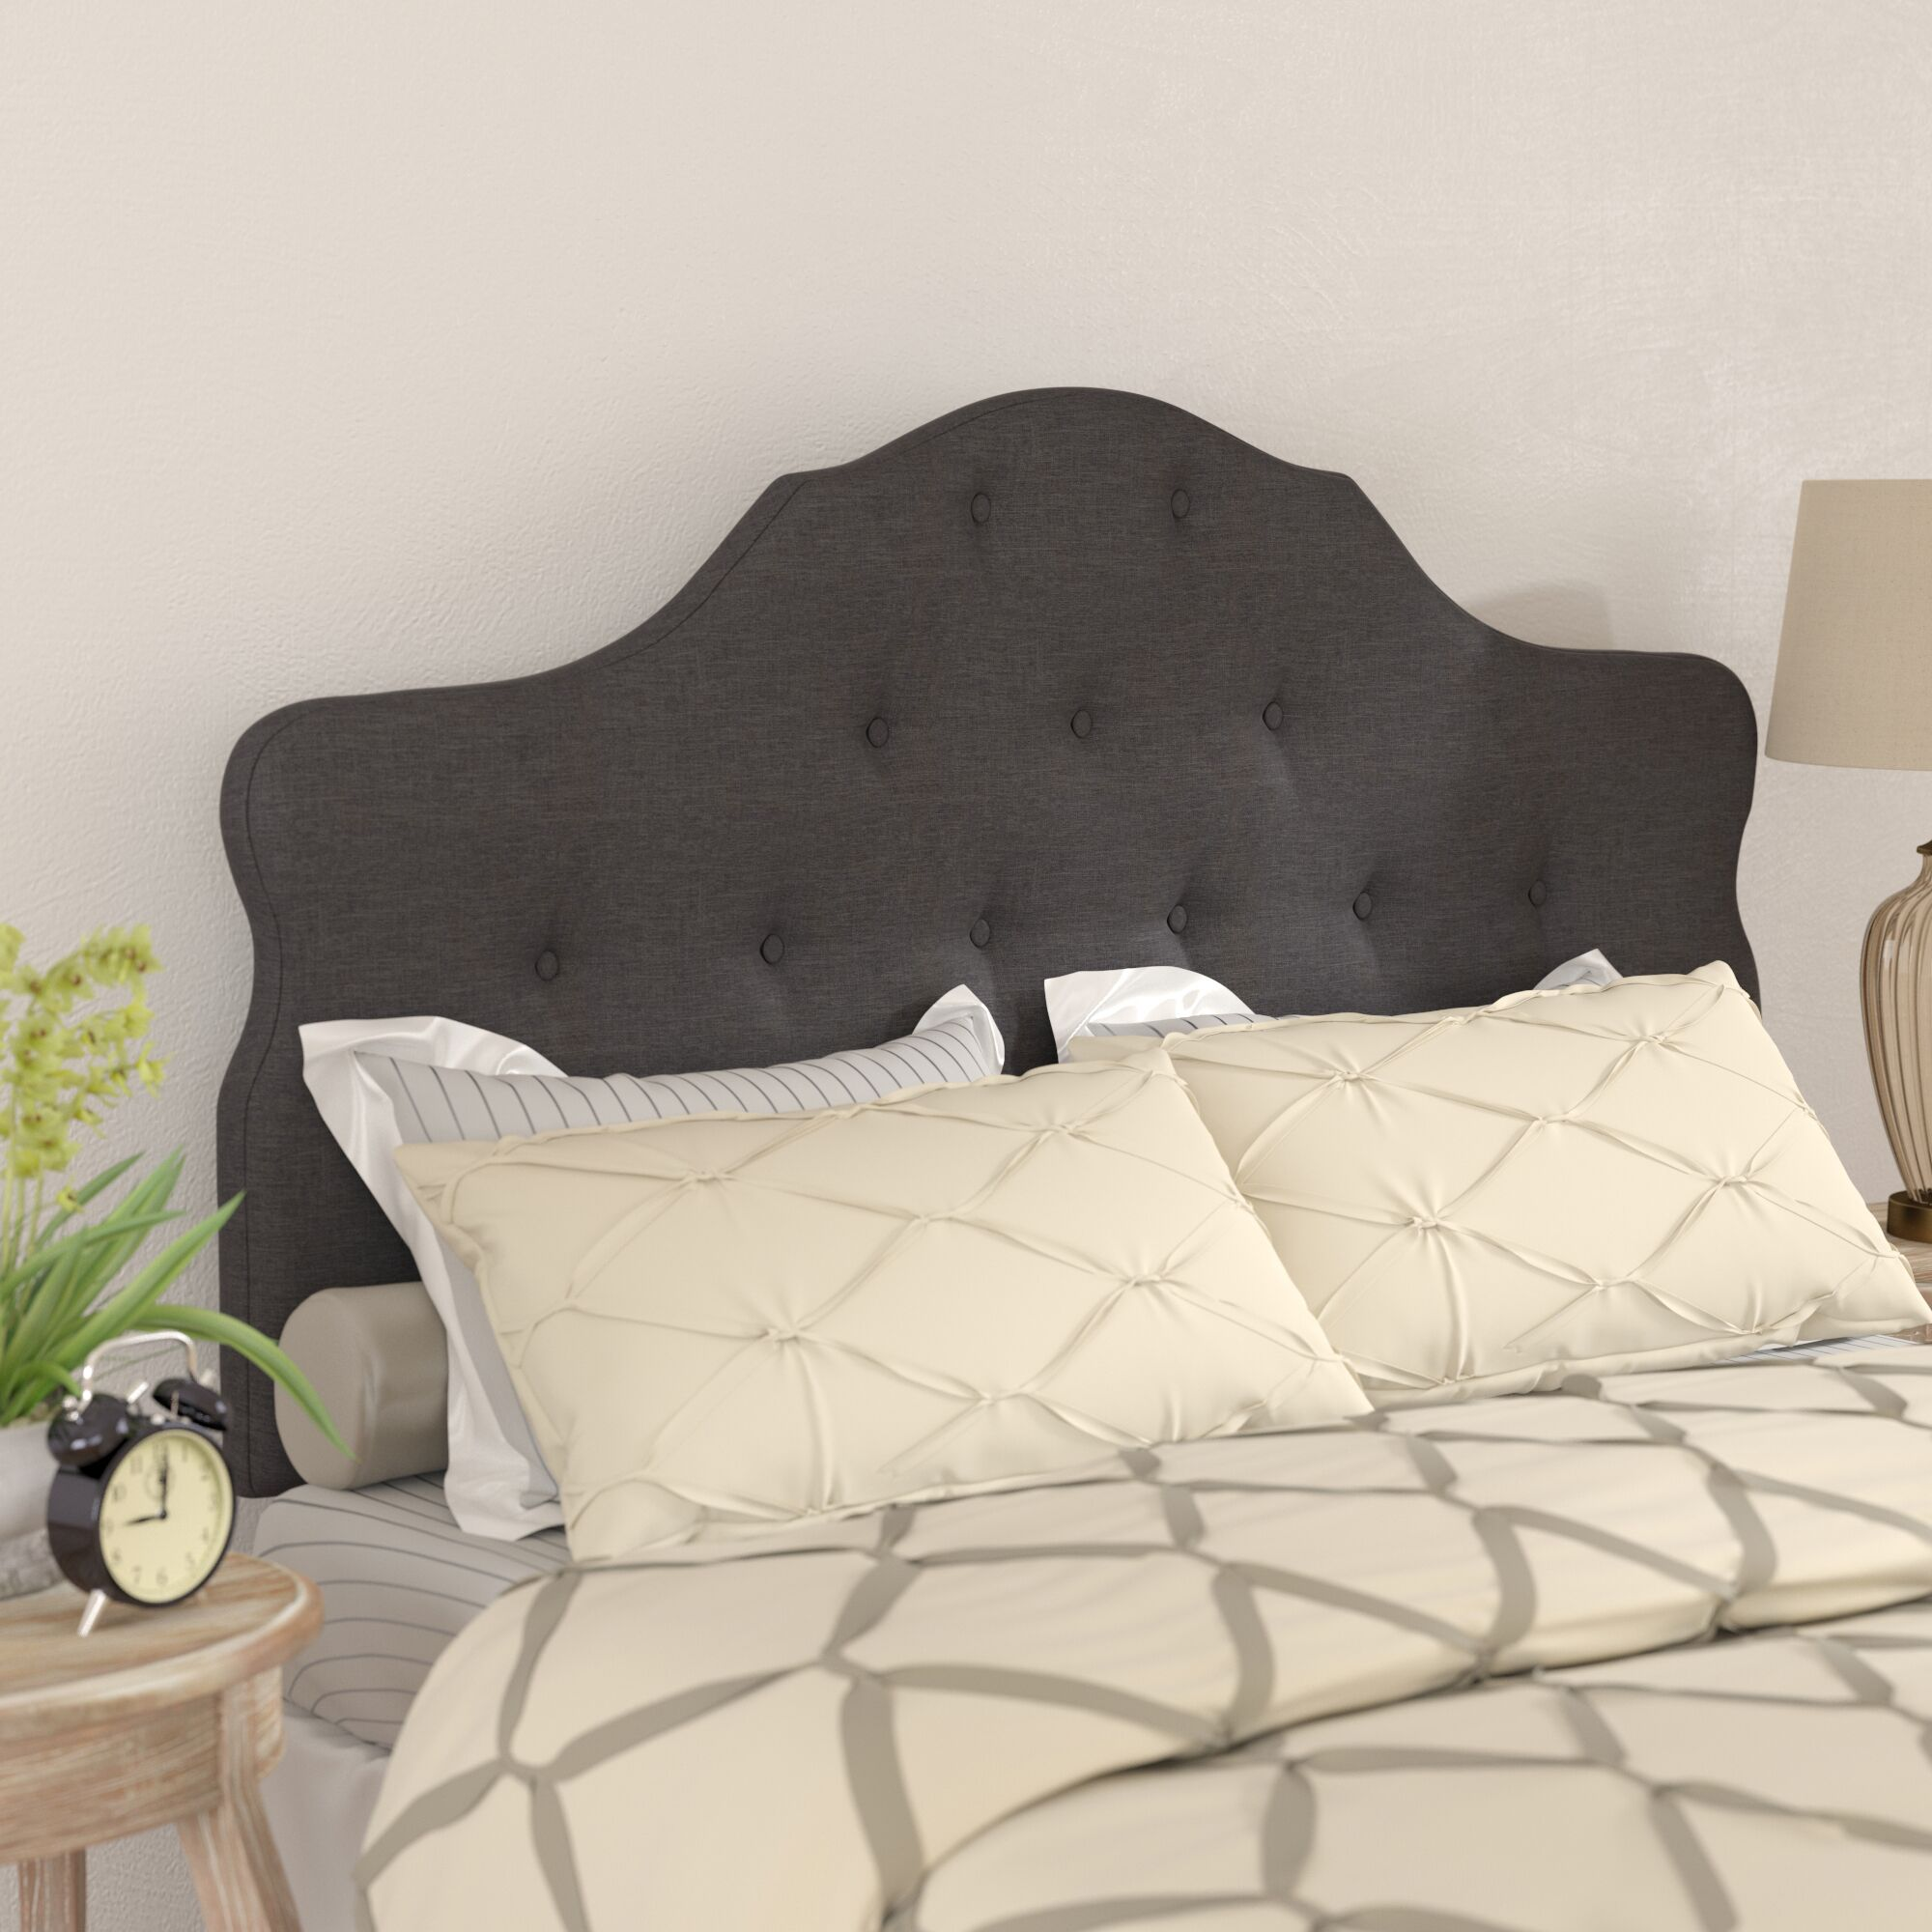 Middlebrooks Upholstered Panel Headboard Upholstery: Dark Gray, Size: Queen